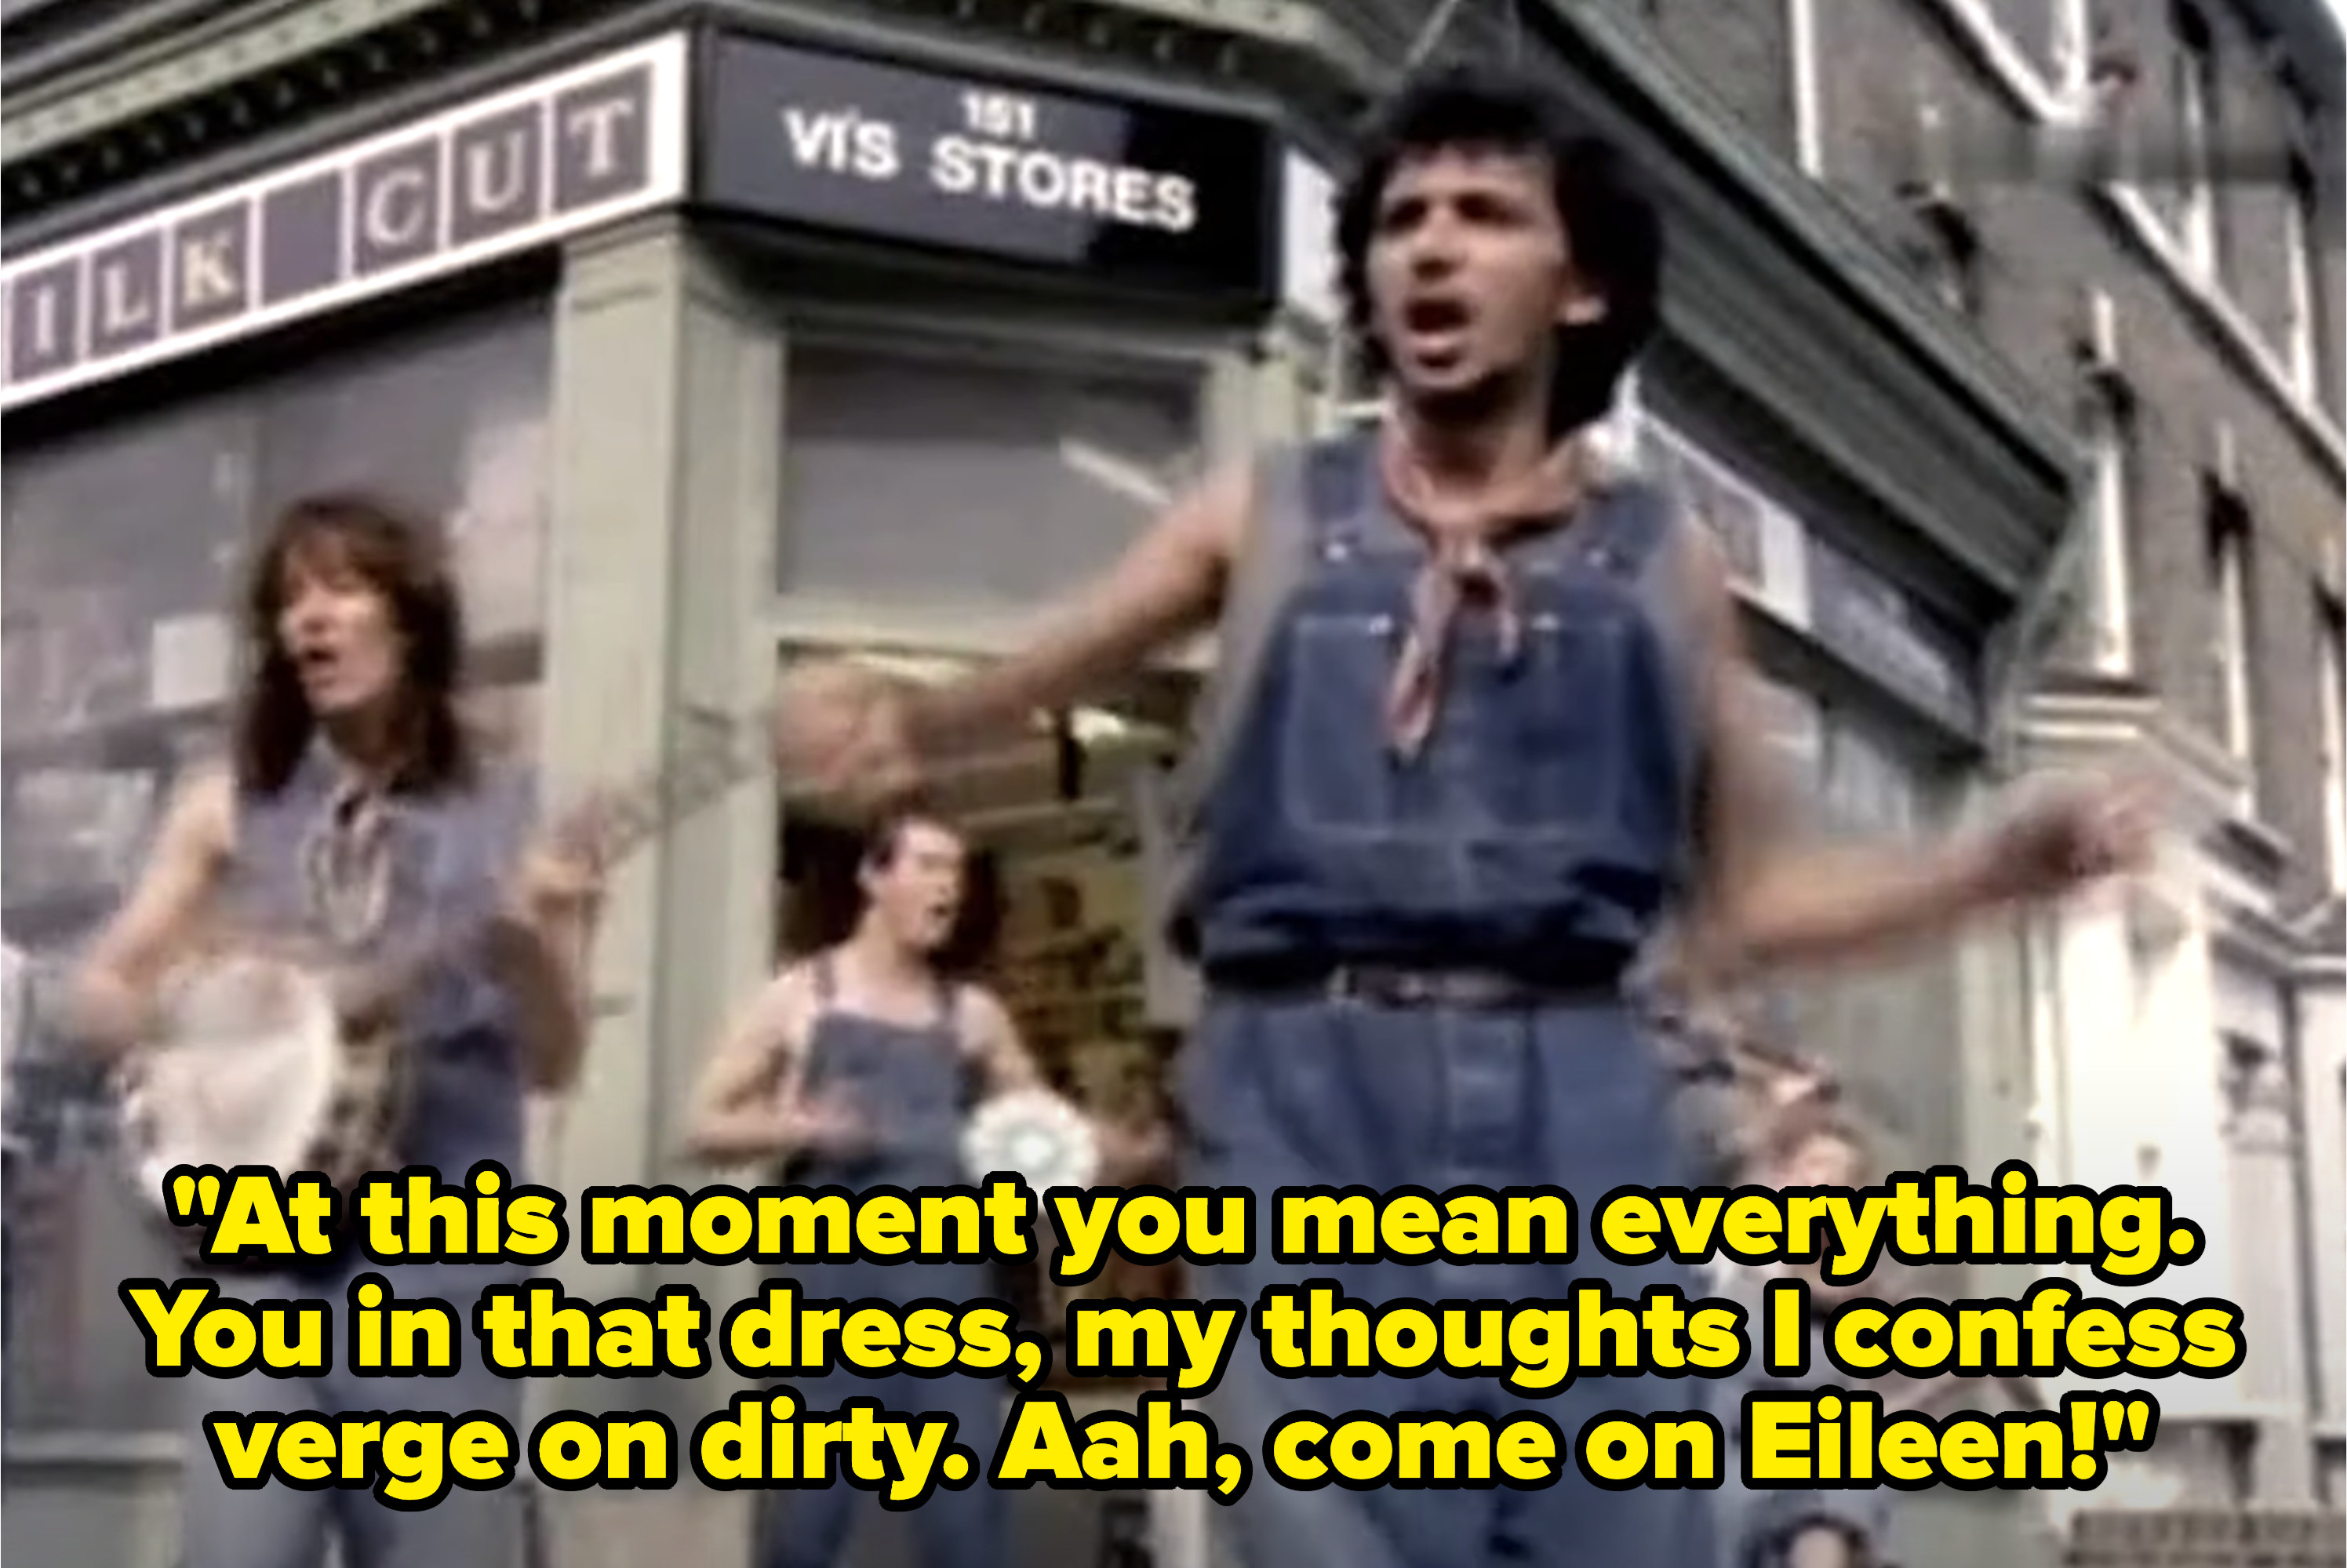 """The """"Come on Eileen"""" music video with lyrics, """"At this moment you mean everything. You in that dress, my thoughts I confess verge on dirty. Aah, come on Eileen"""""""